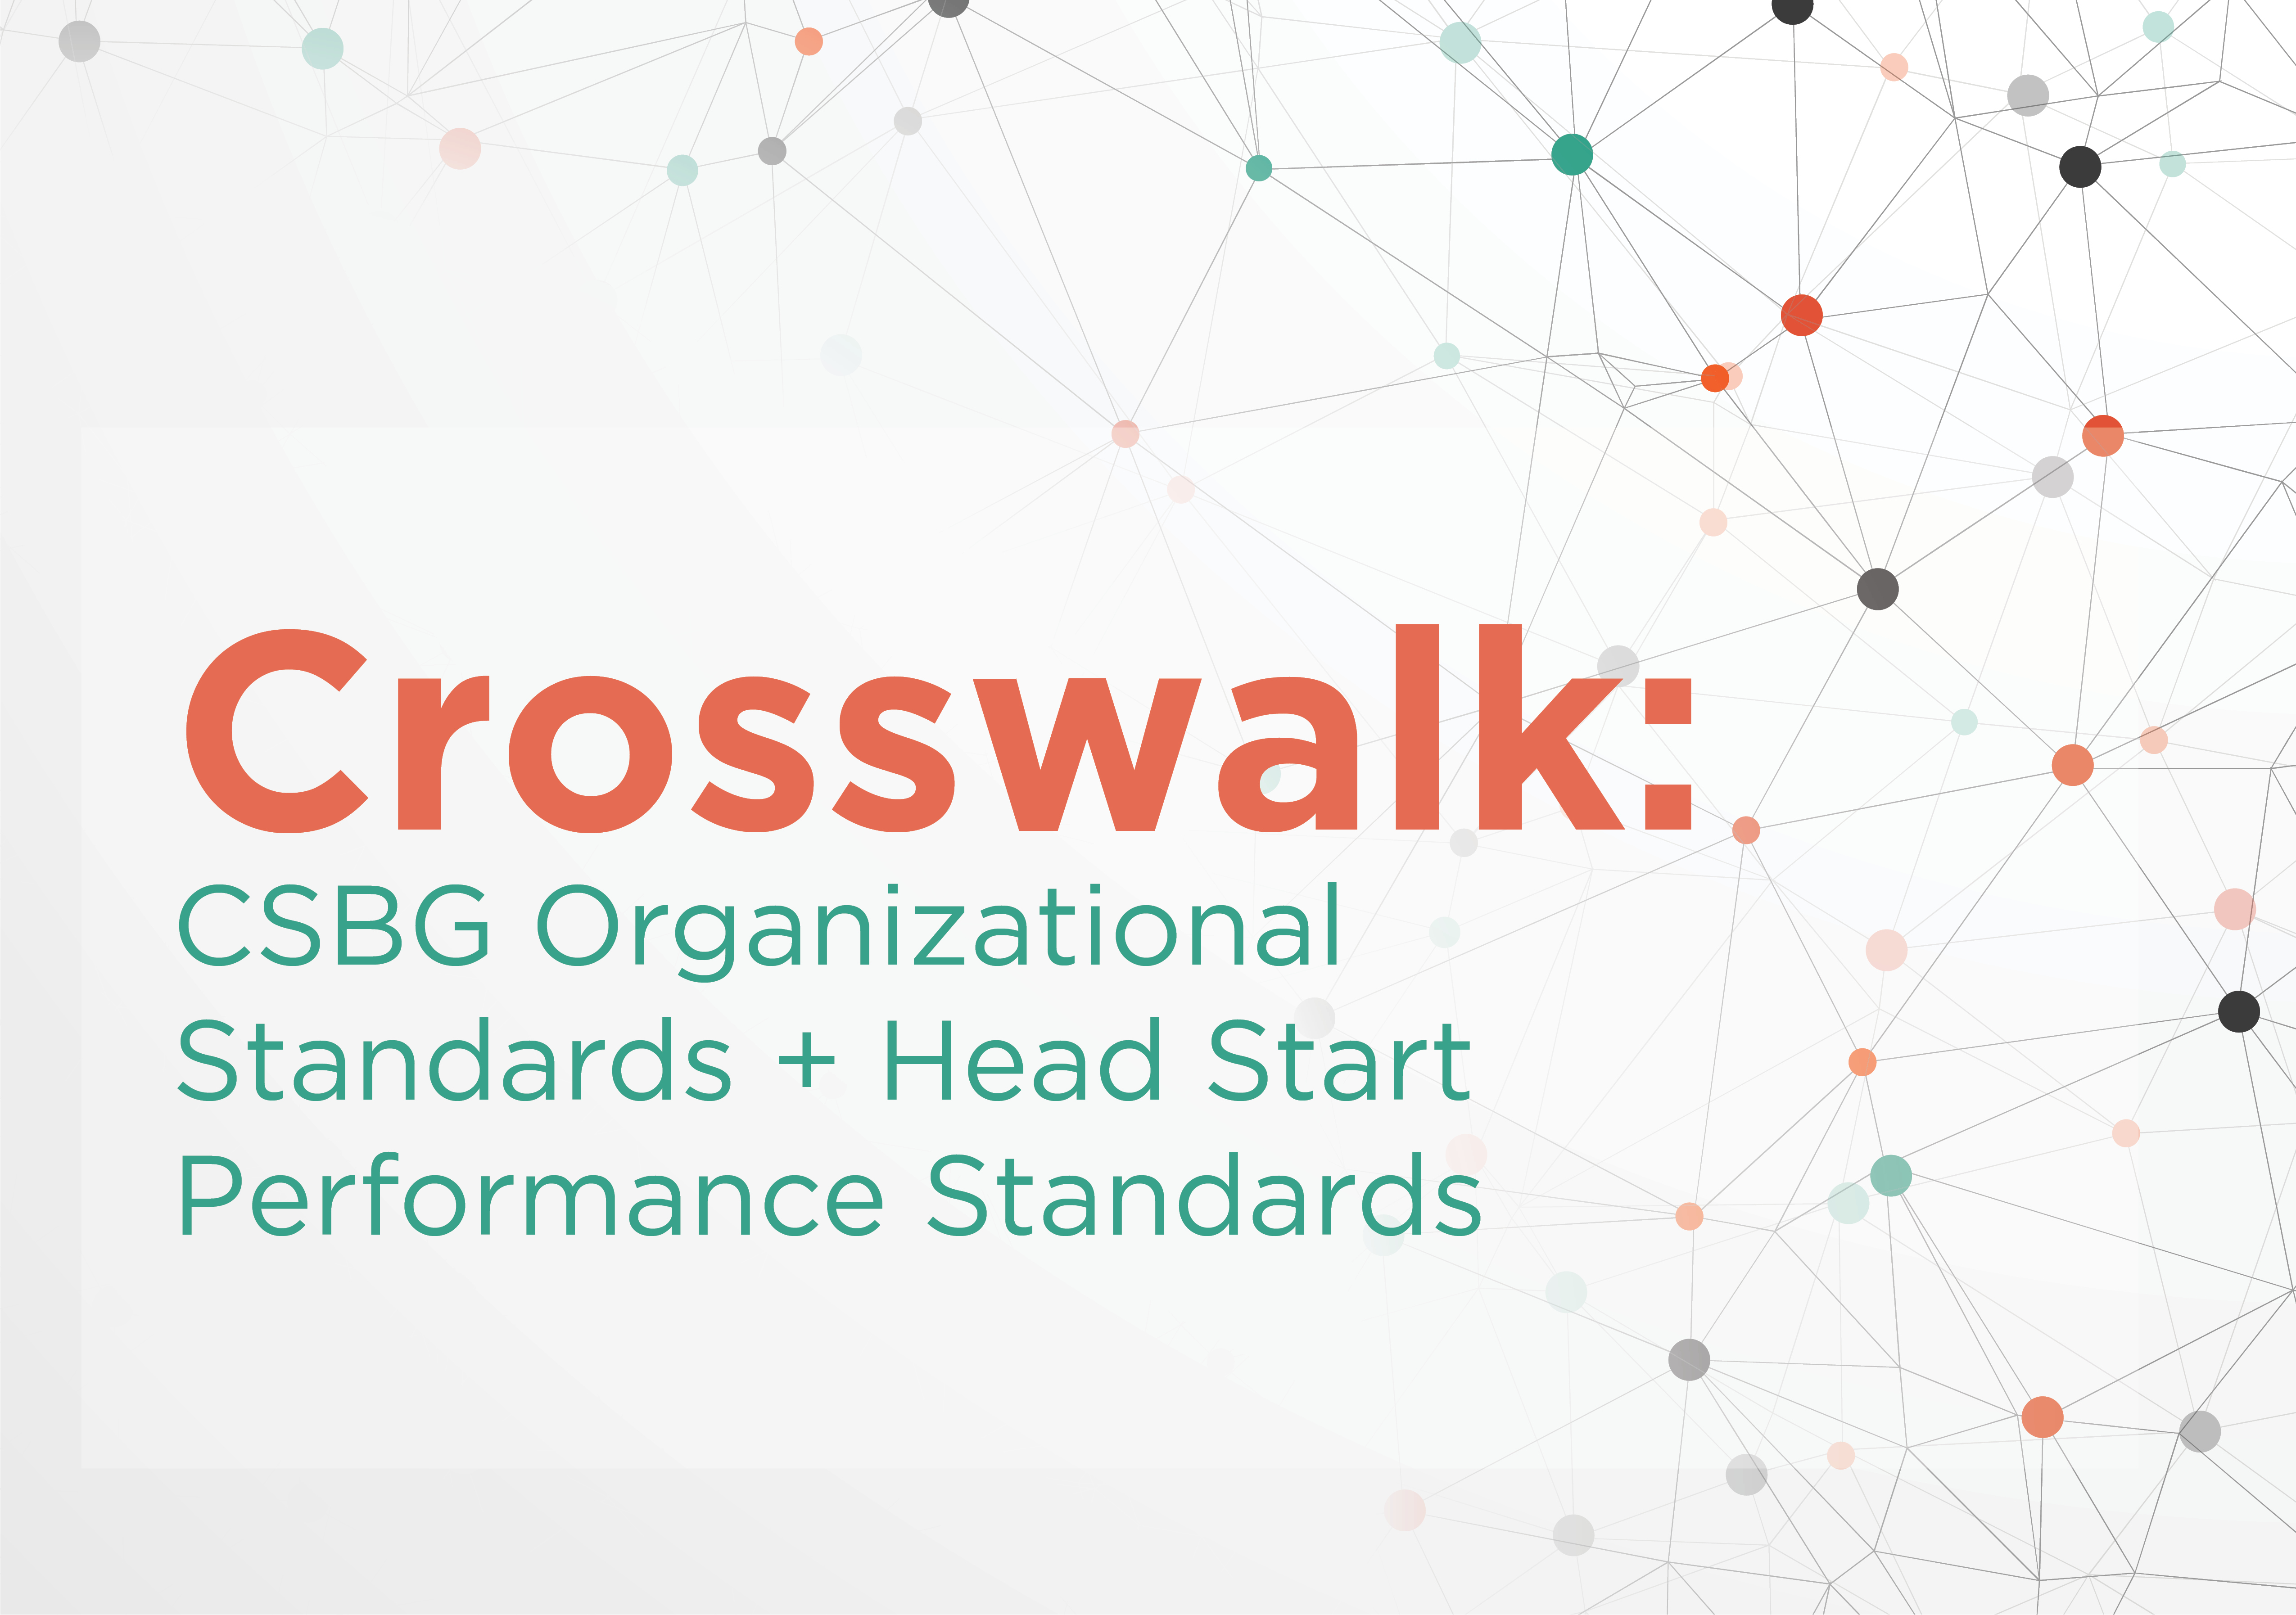 crosswalk of csbg and head start standards